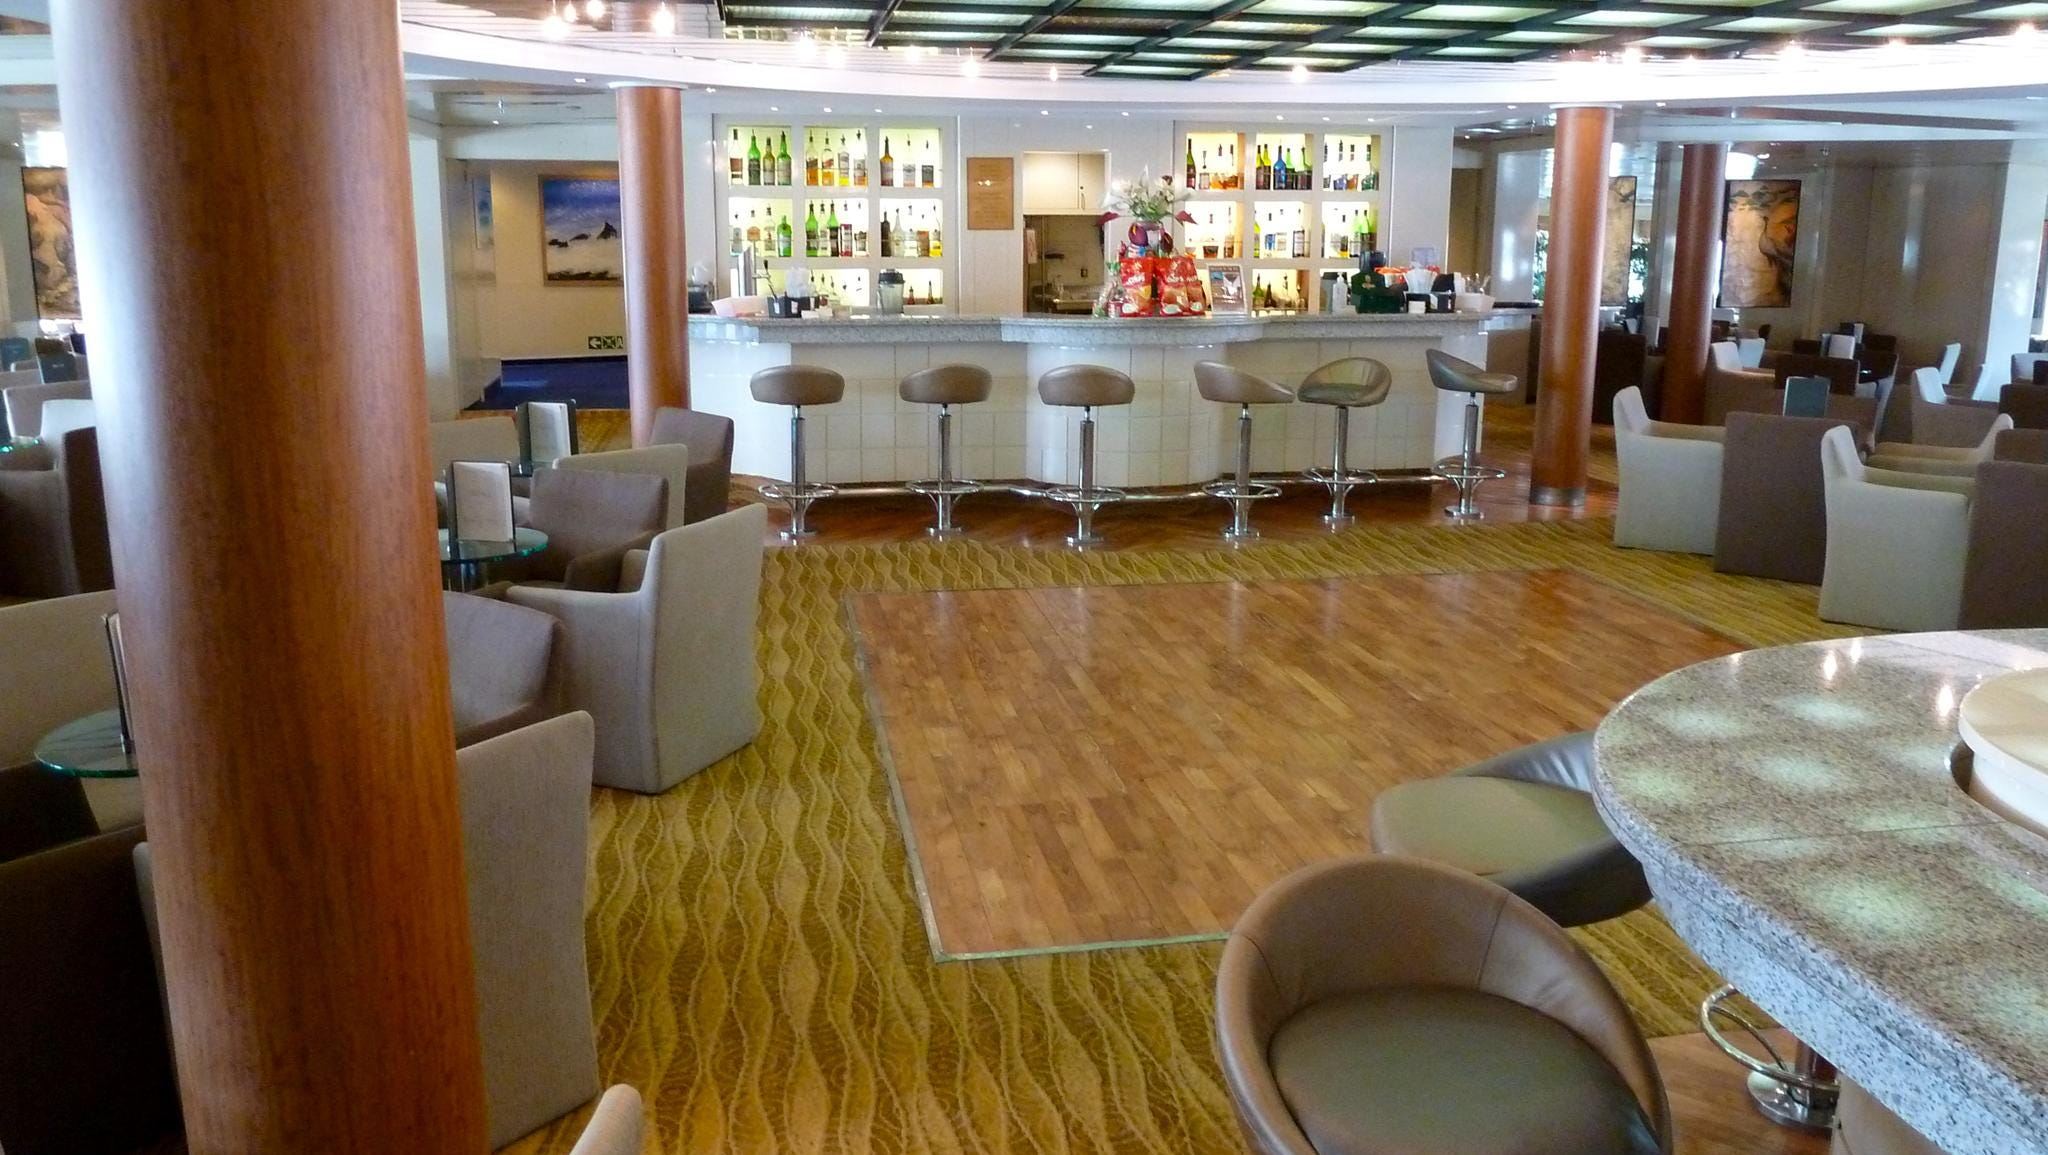 The Captain's Club has a skylight-topped dance floor and extra seating at the bar as well as around the grand piano.